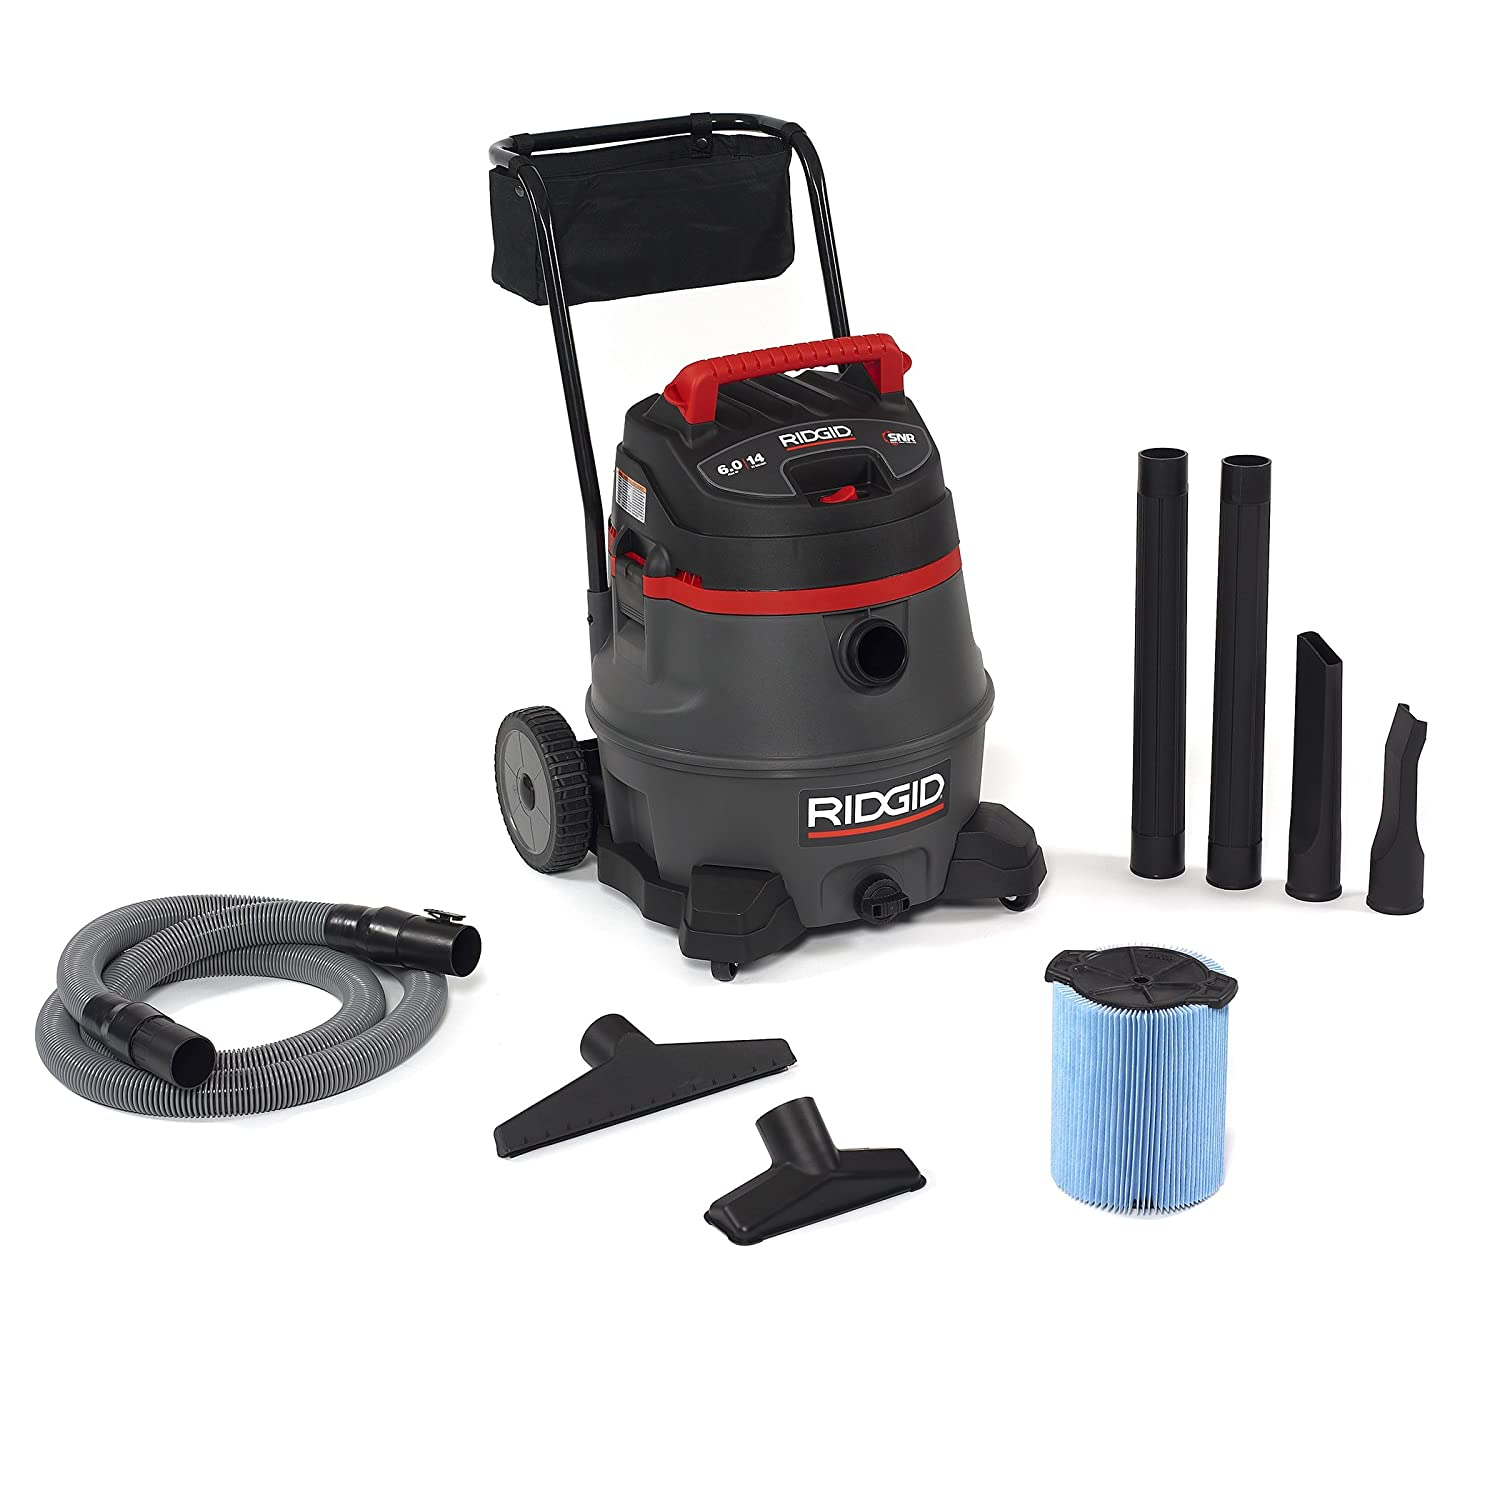 Ridgid Shop Vacuum Reviews